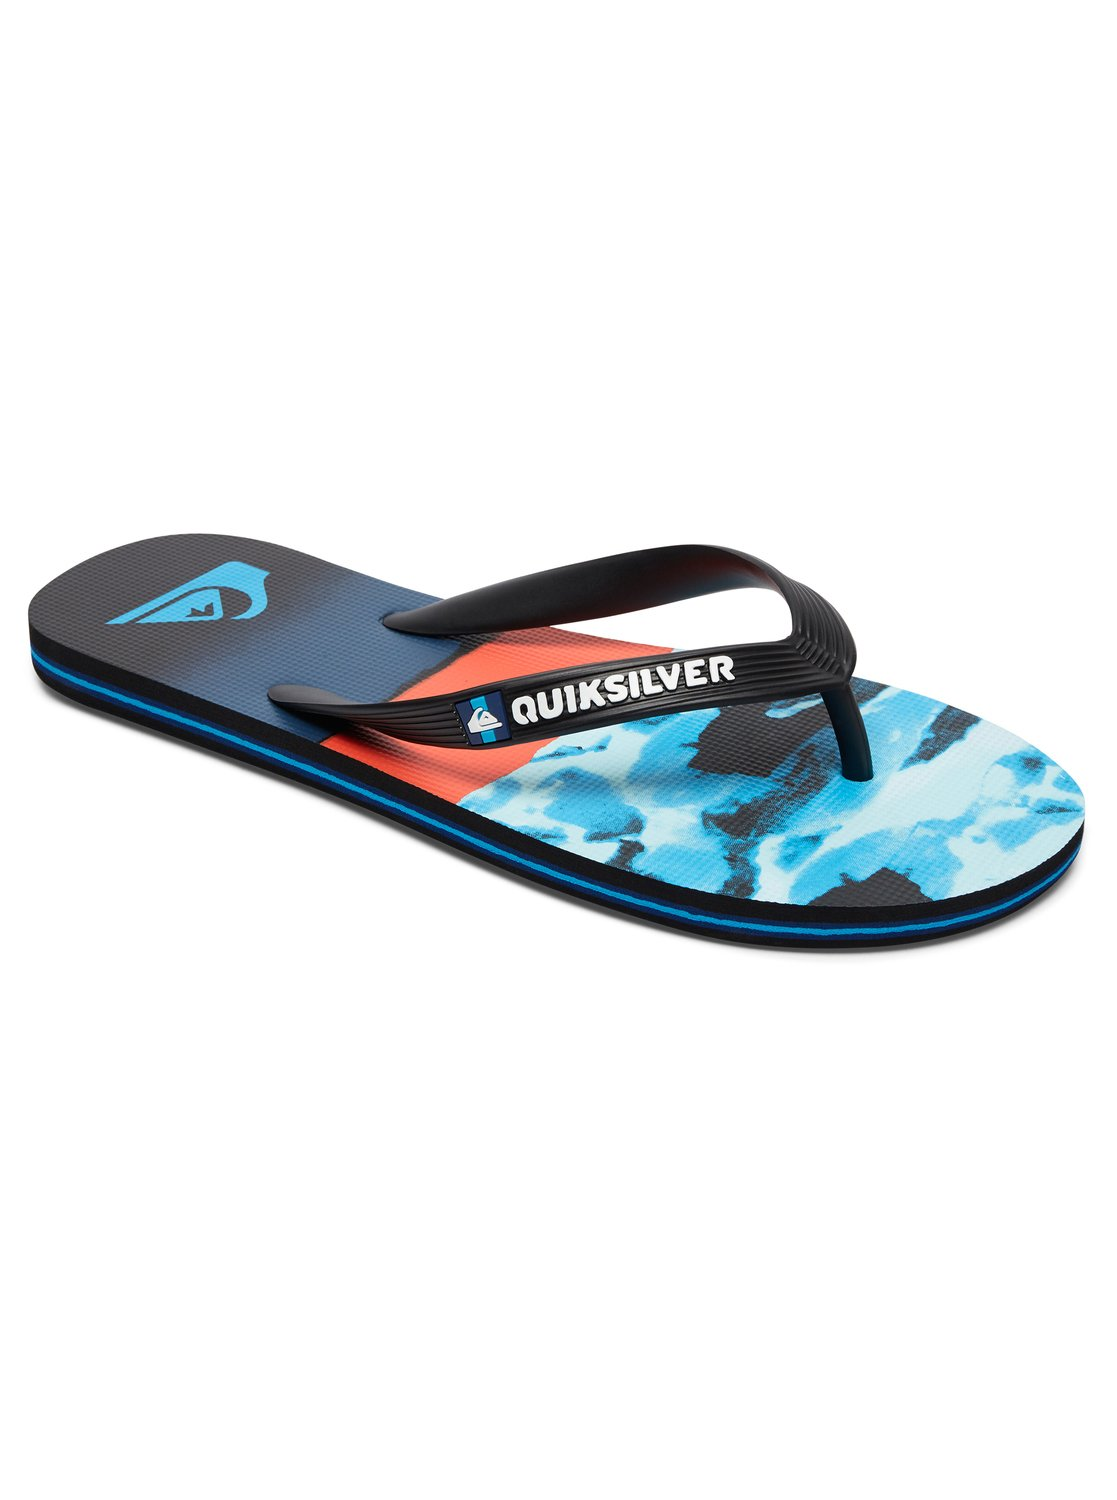 QUIKSILVER Molokai Blocked Resin fashion shoes clearance  hot sale online